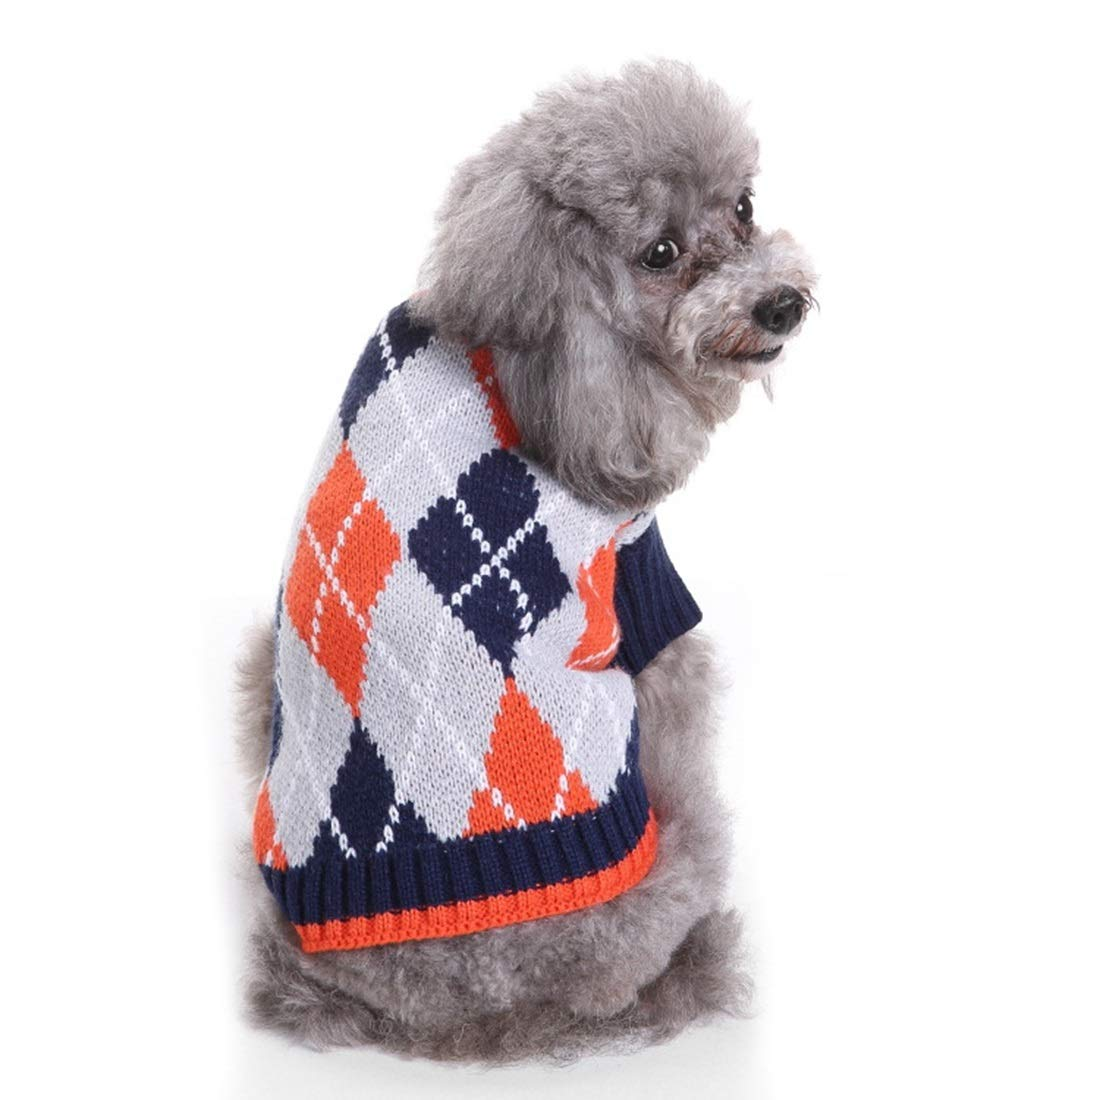 MYD60 Lange XXL MYD60 Lange XXL AUSWIEI Dog Sweater Pet Christmas Sweater Knit Turtleneck Pet Clothes Sweater Dog Sweater (color   MYD60 Lange, Size   XXL)